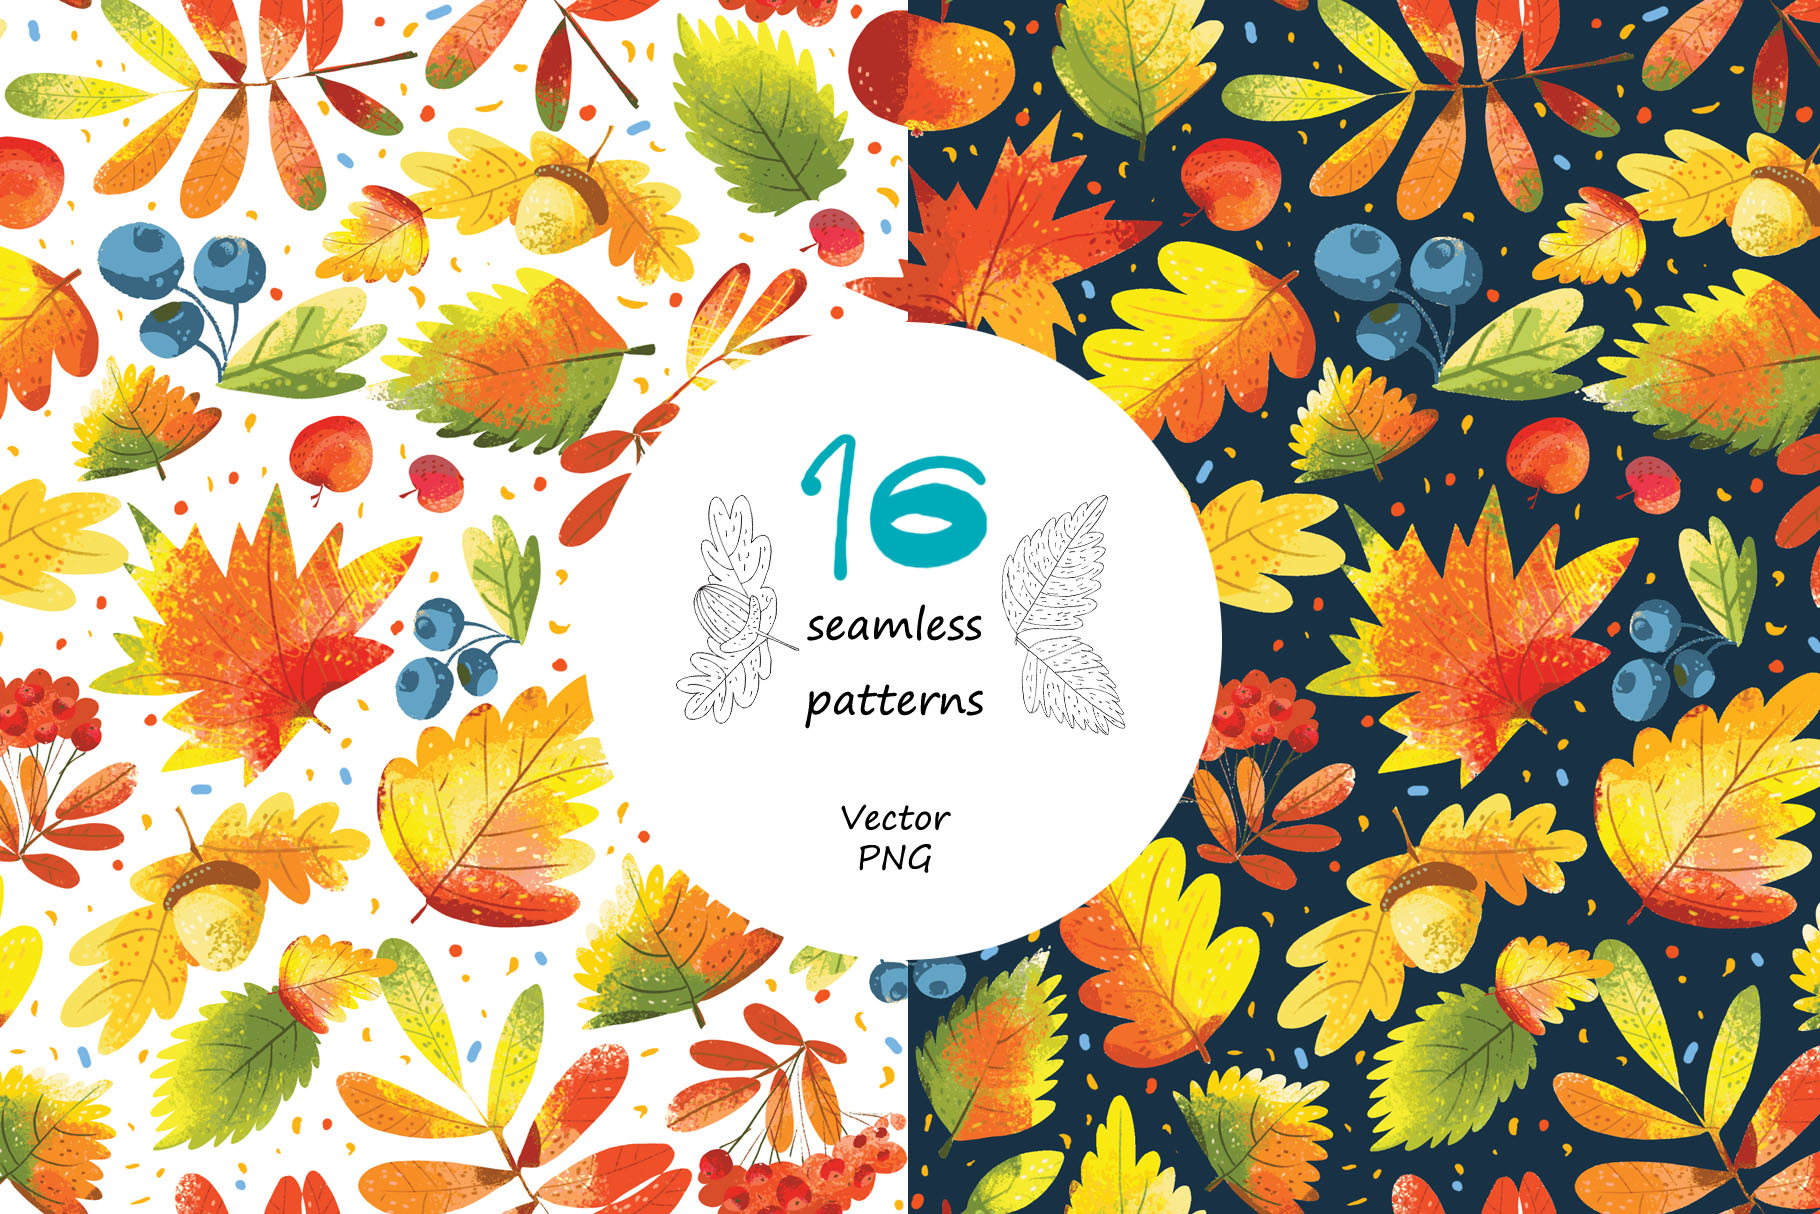 Autumn Leaves - over 30 objects, frames, patterns example image 5